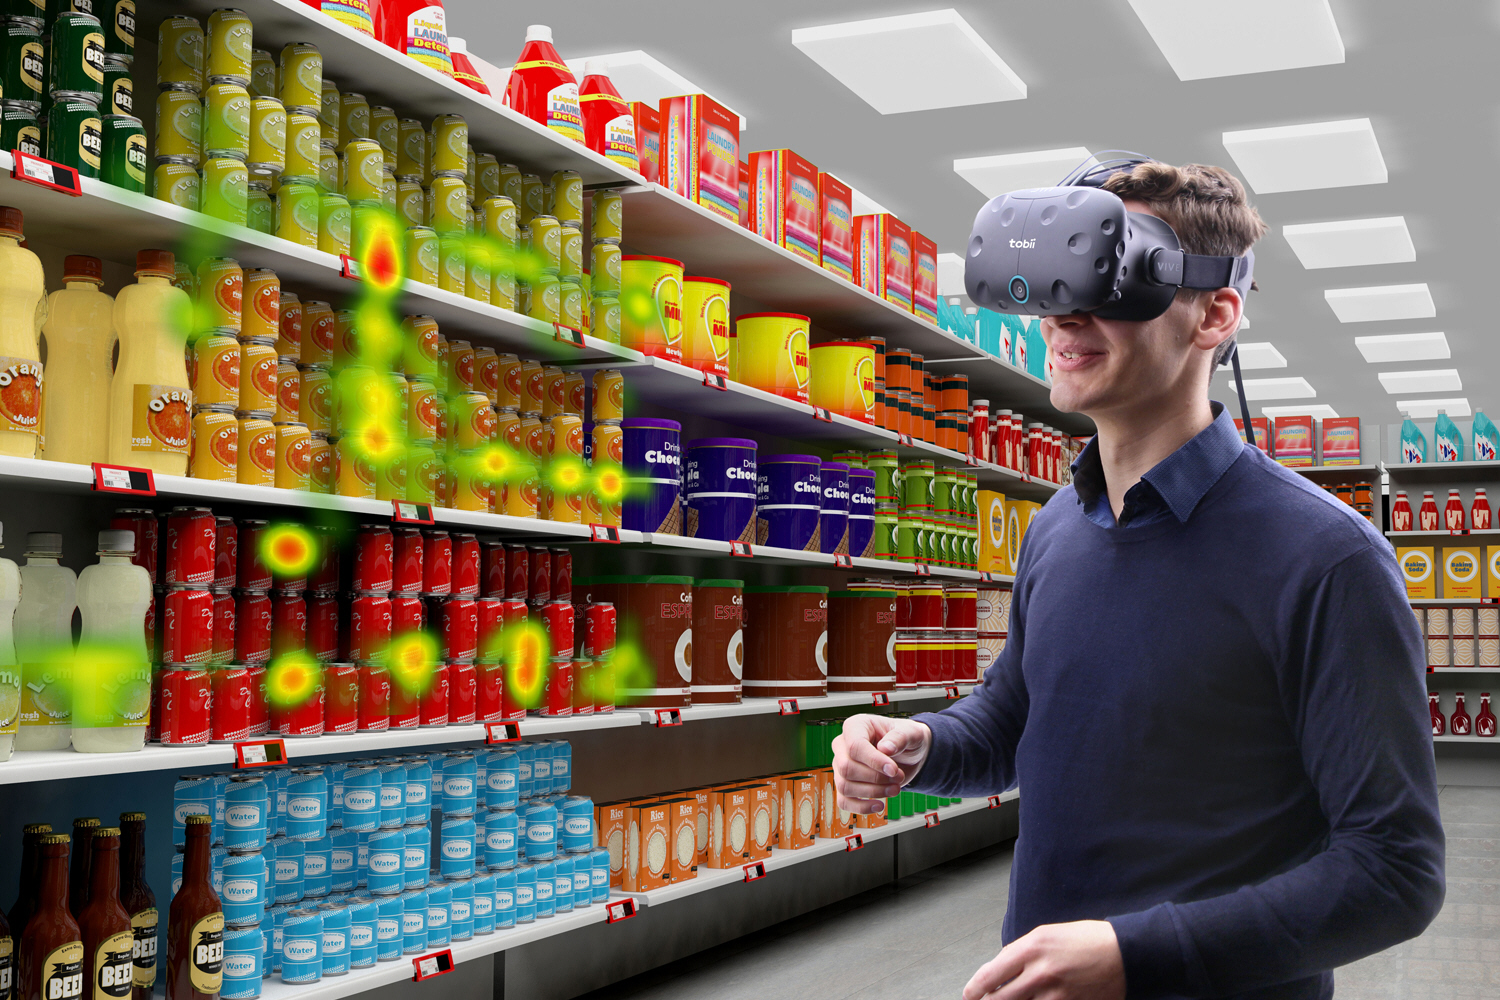 TobiiPro-eye-tracking-integrated-HTC-Vive-shopper-